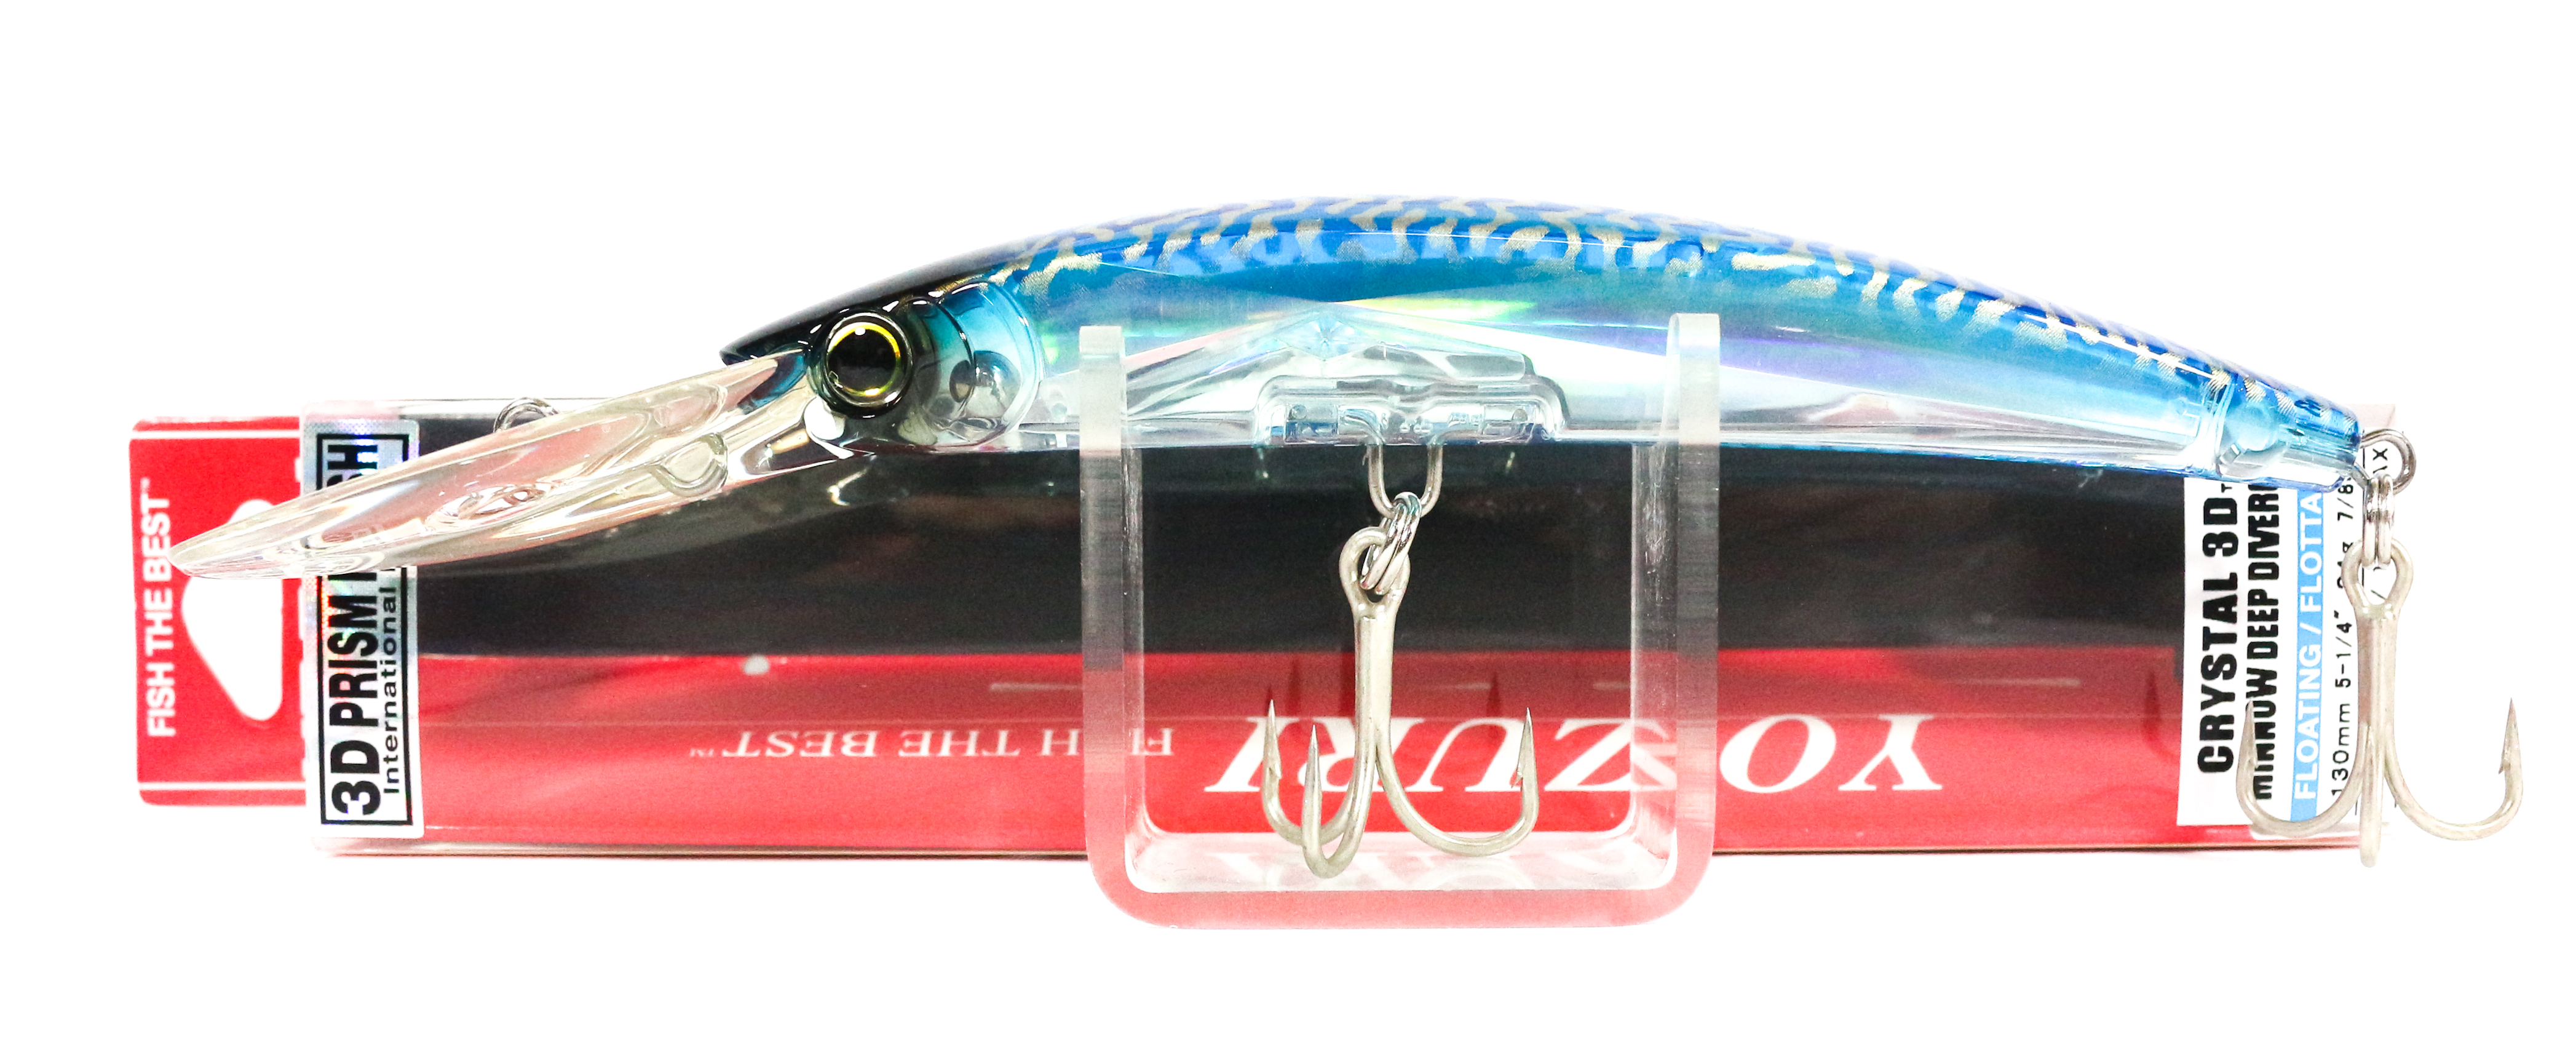 Yo Zuri 3D Crystal Minnow DD 130 mm Floating Lure F1153-C24 (6430)